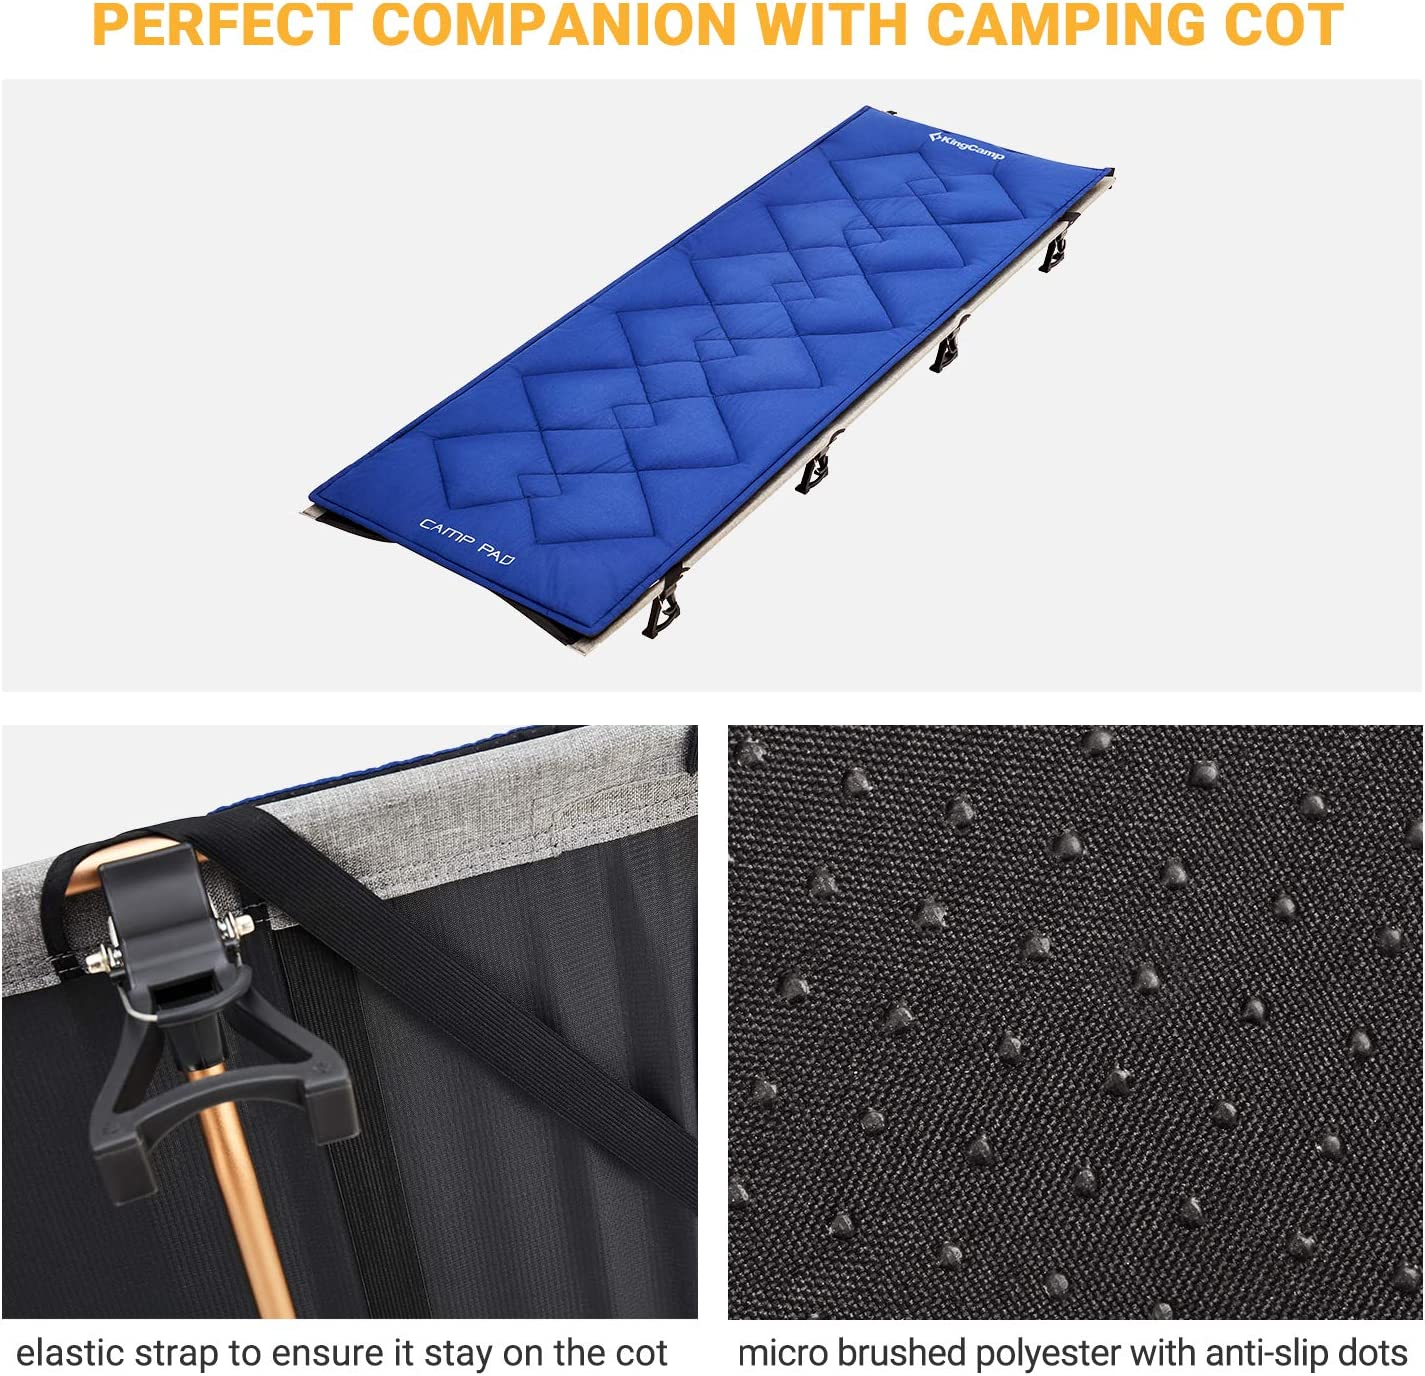 KingCamp Soft Cotton Sports Camping Sleeping Cot Mat Pefect for Camp Cot